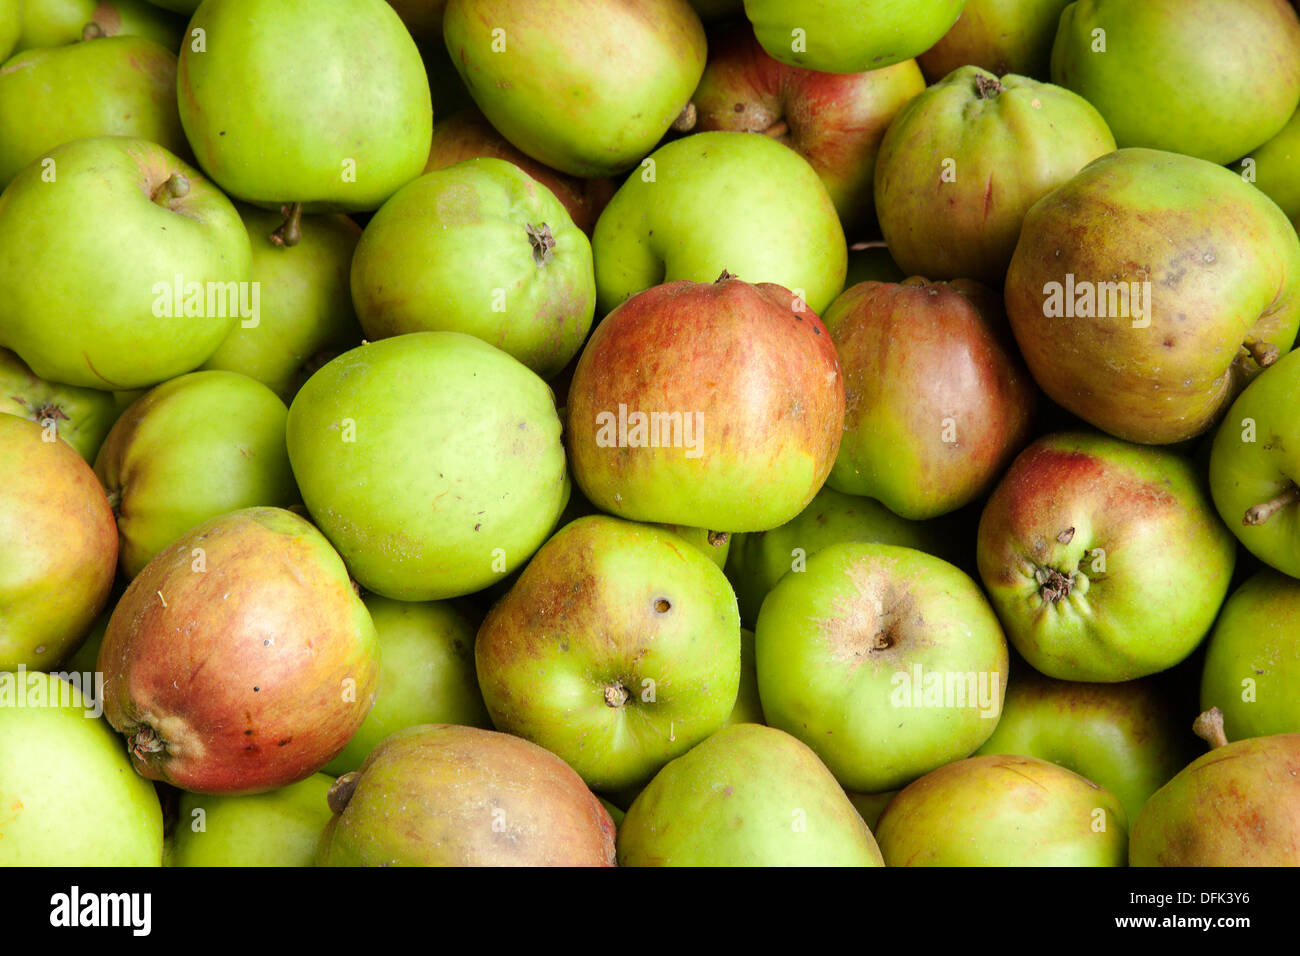 Imperfect Orchard fruits of Autumn_Scotch Bridget apples_ Scottish cooking apple that is also widely-grown in north-west England - Stock Image